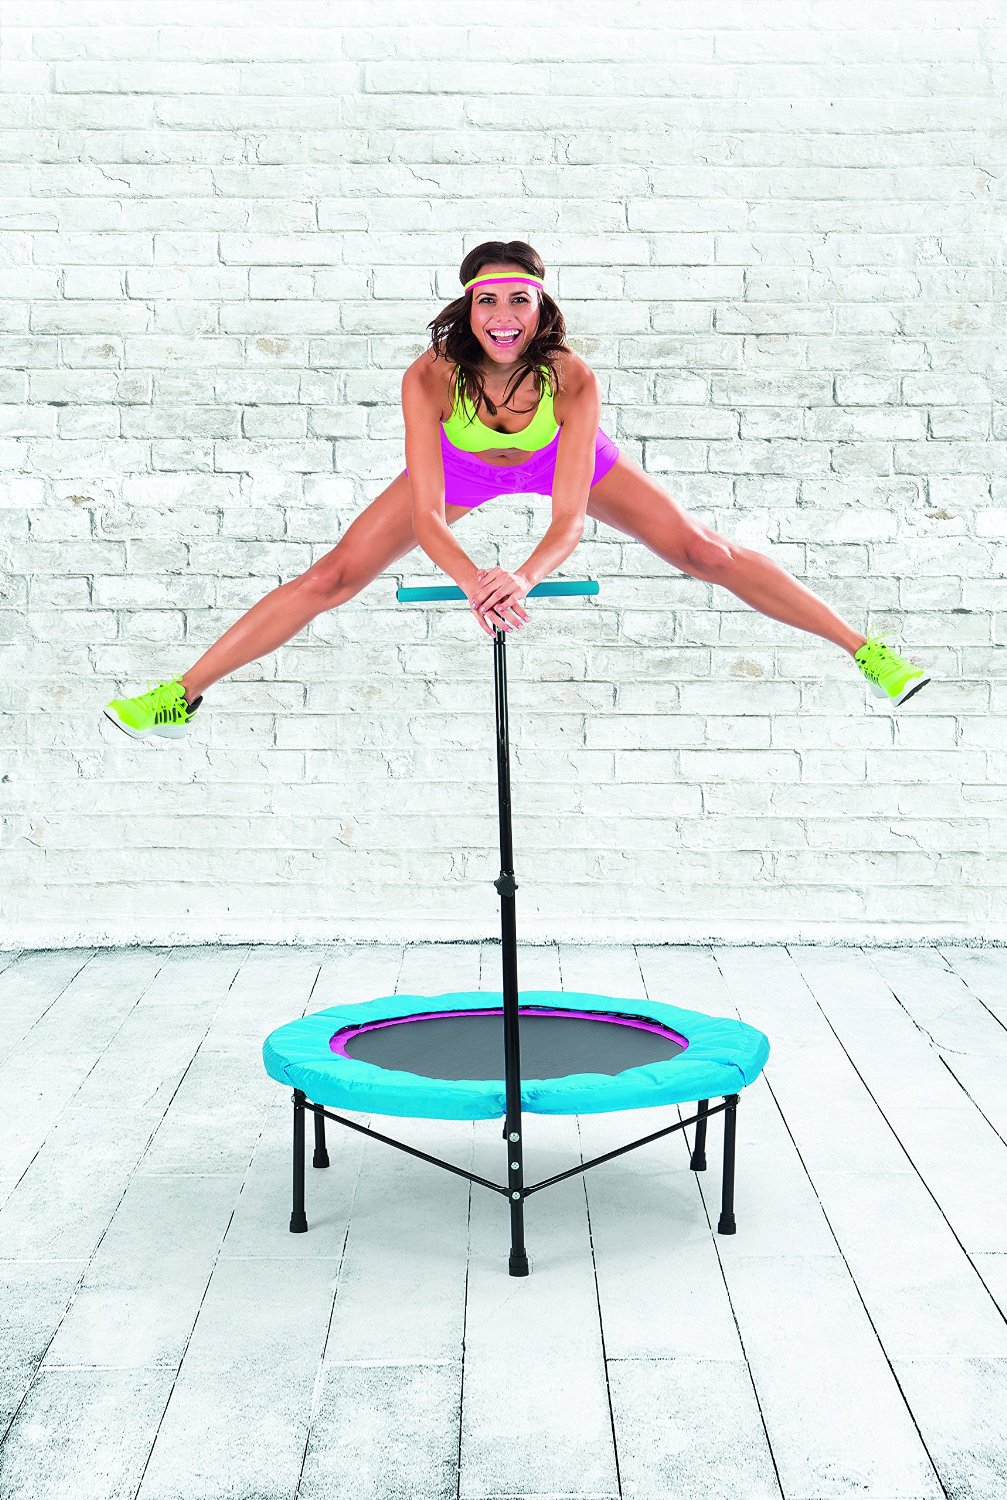 mini trampoline fitness et sport mini trampoline. Black Bedroom Furniture Sets. Home Design Ideas